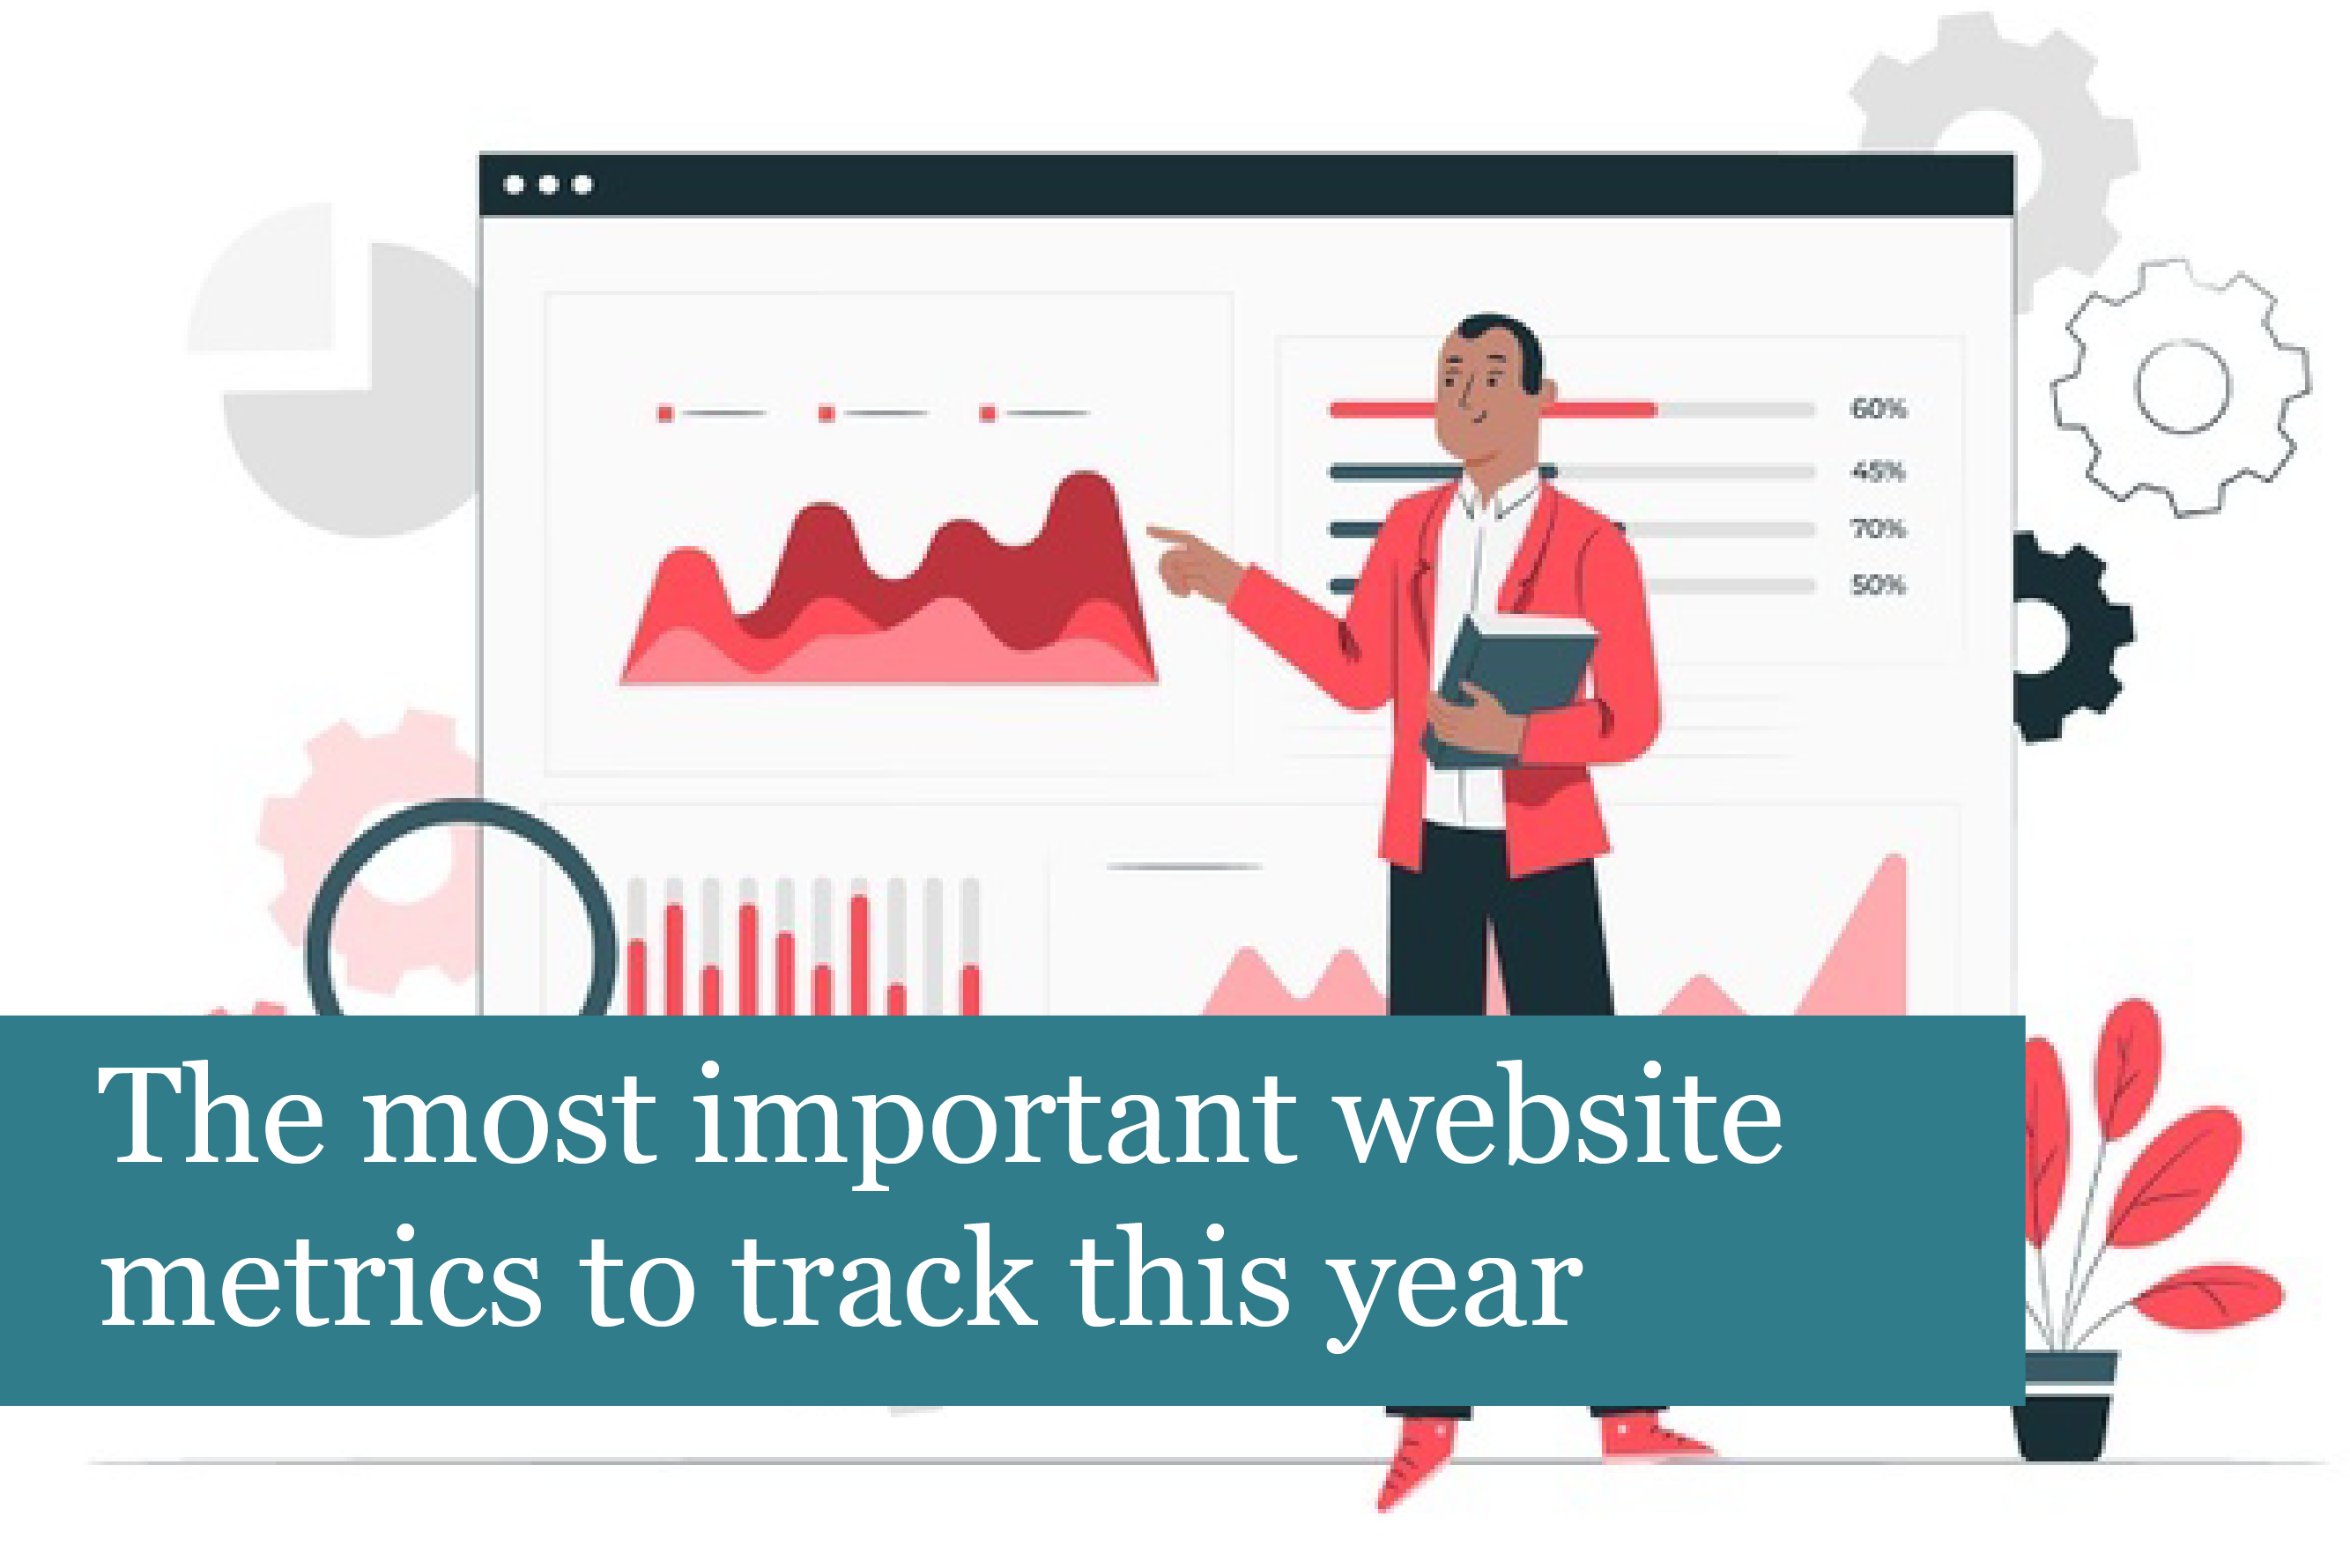 The most important website metrics to track this year